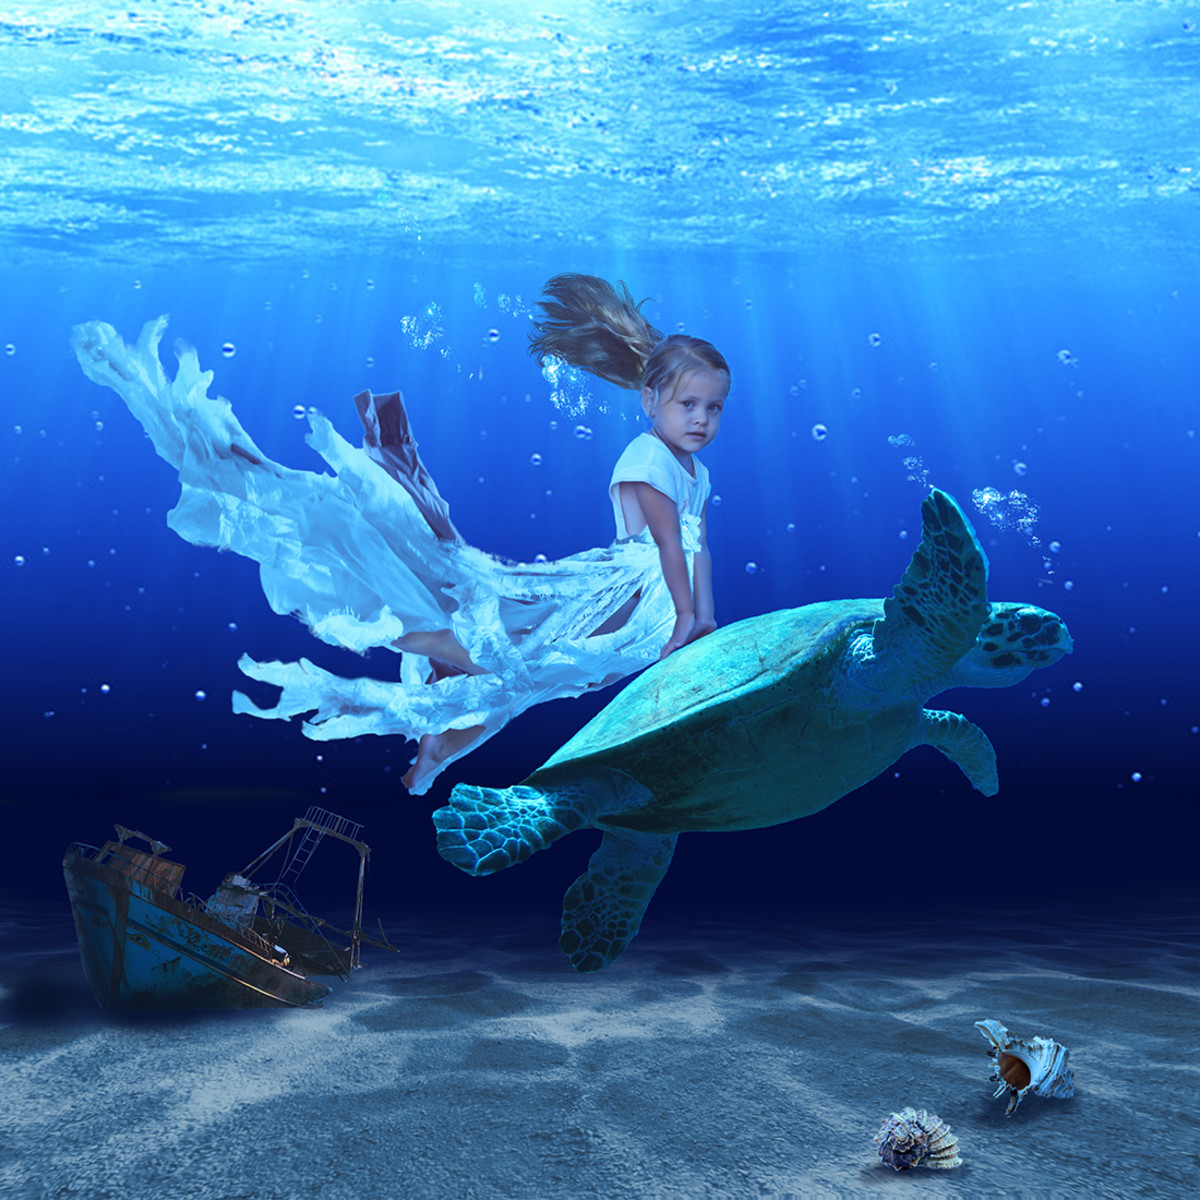 My water pixie photo composite.